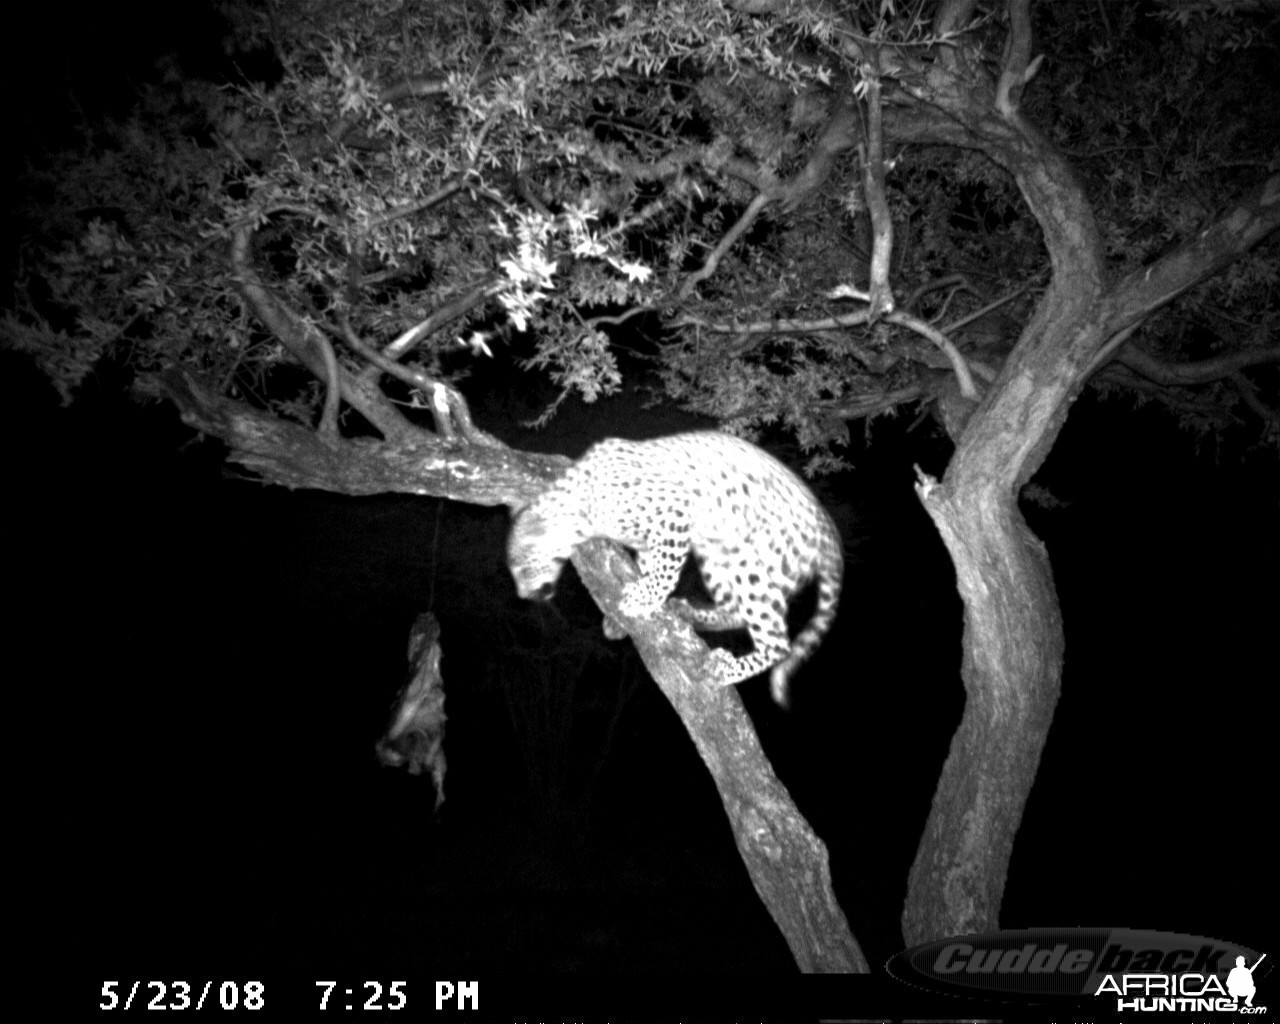 Hunting Leopard on Bait at Ozondjahe Safaris Namibia